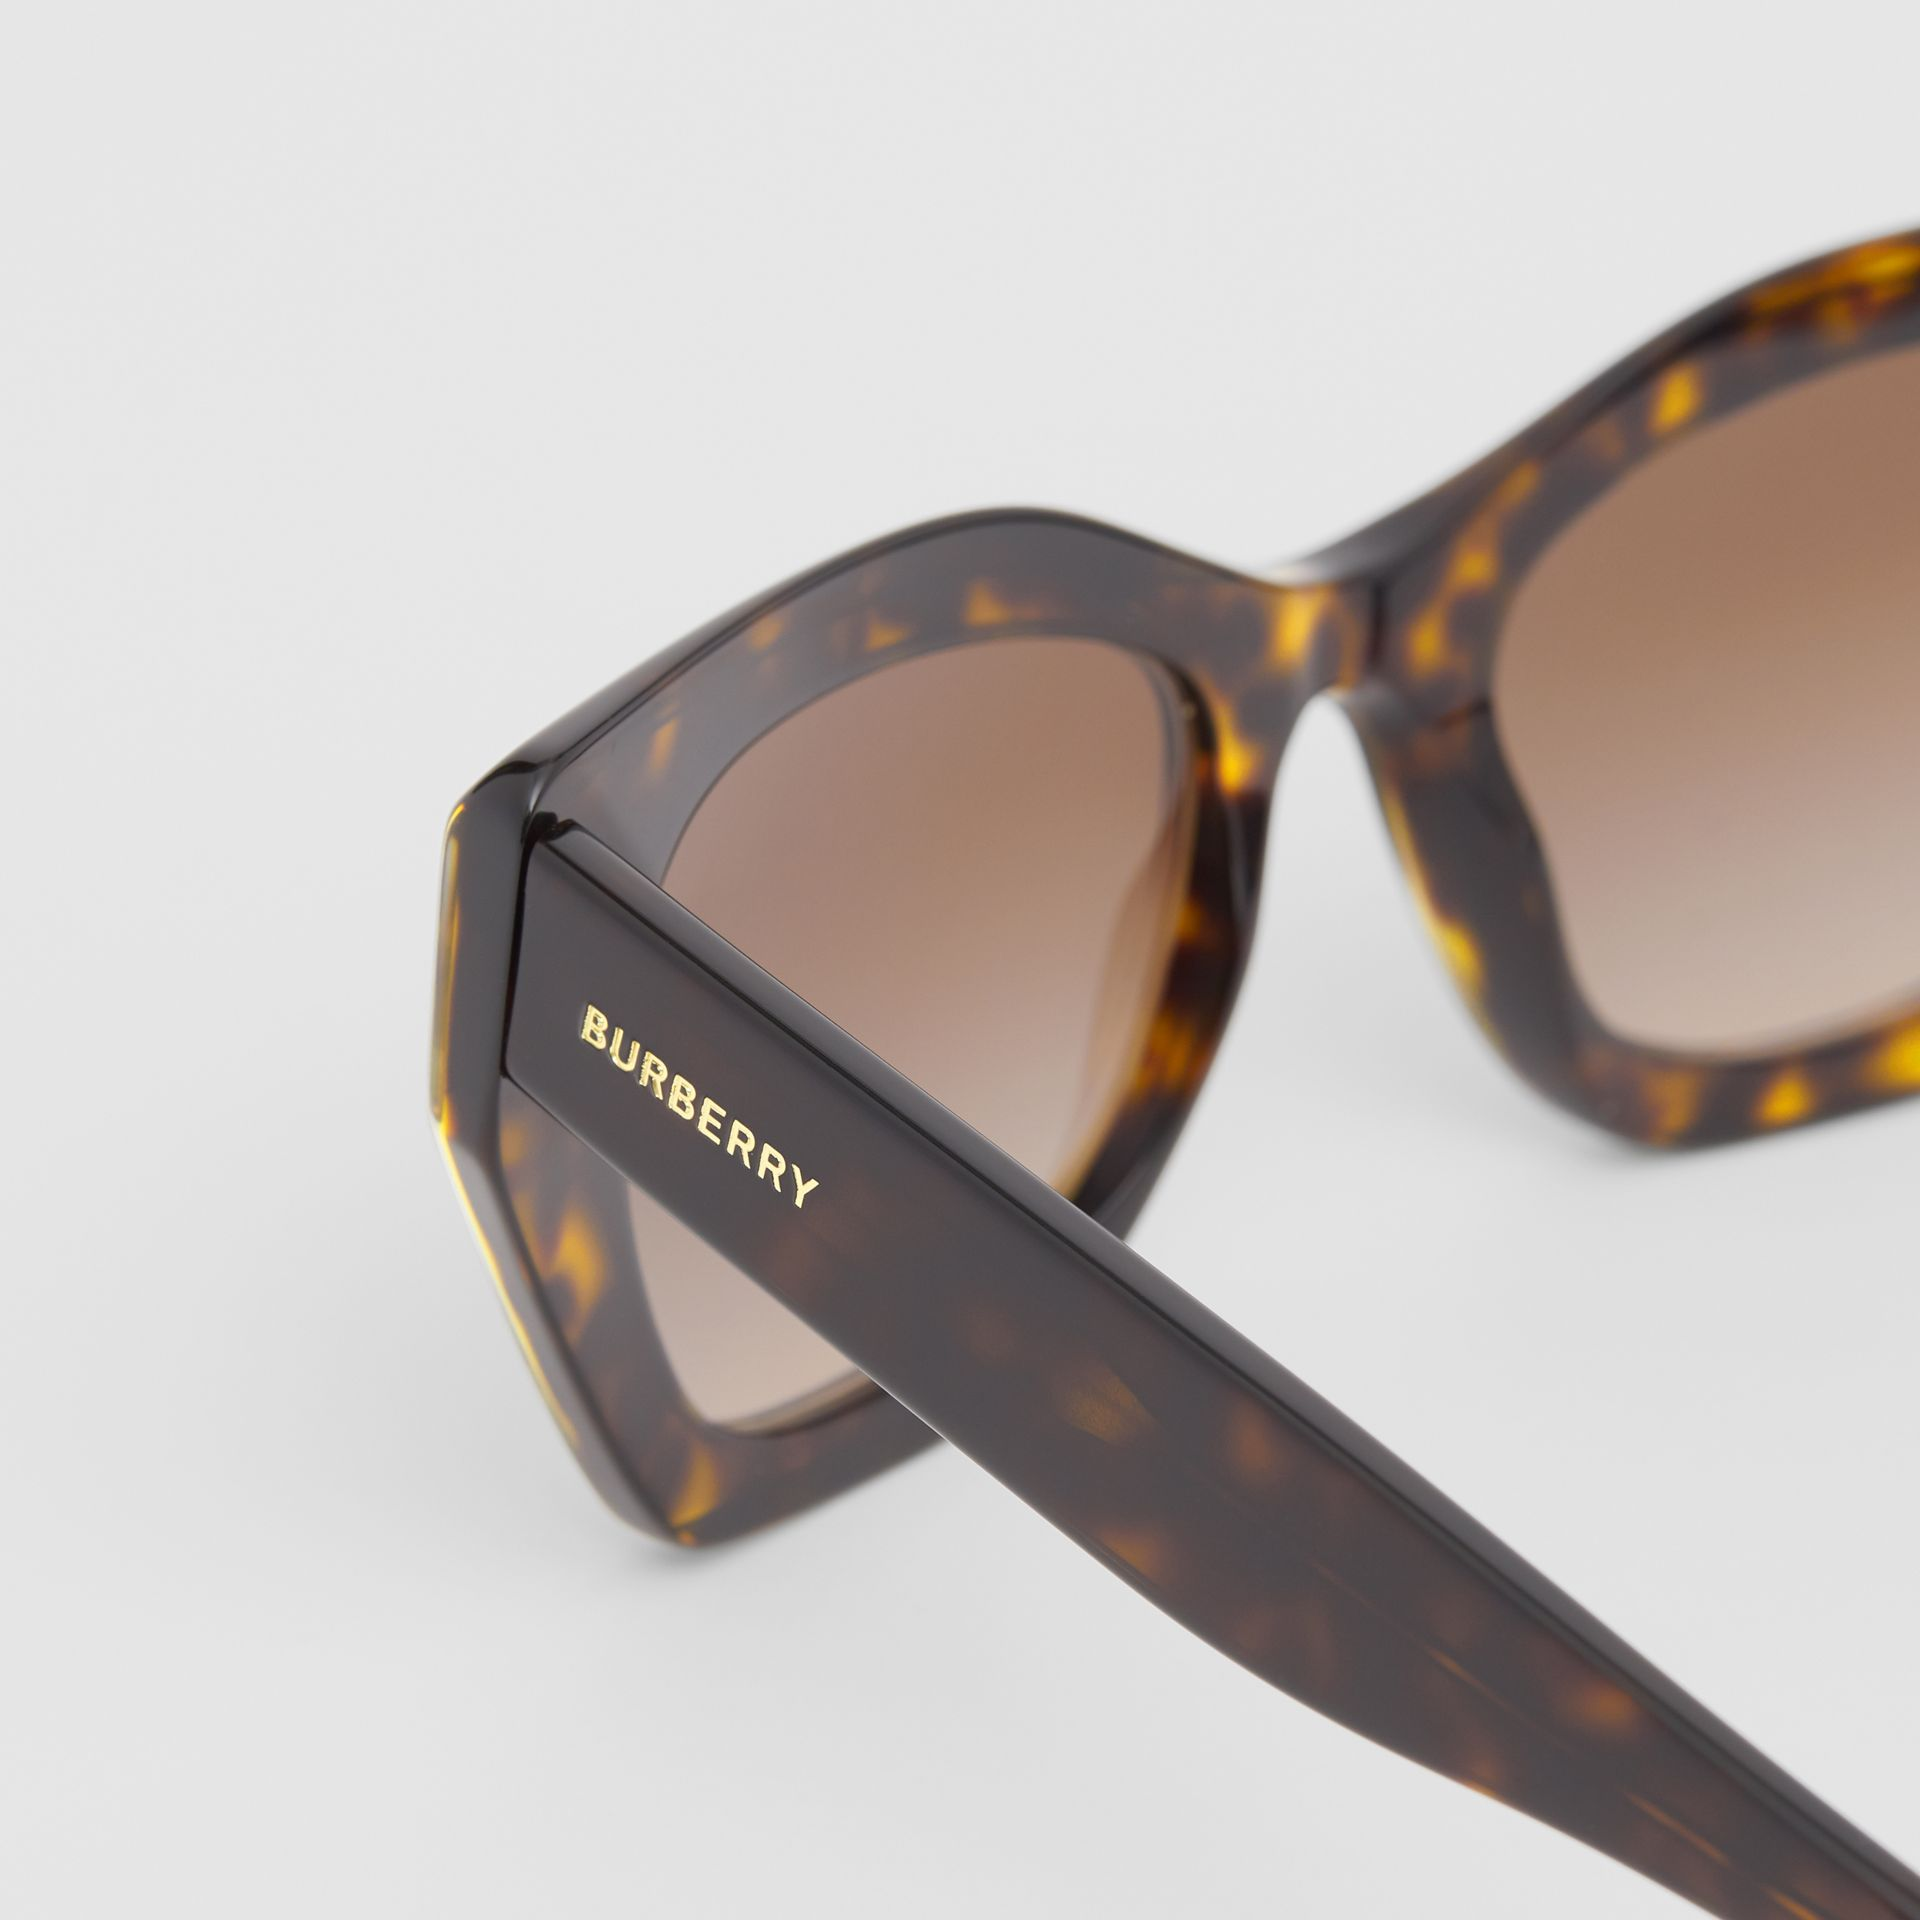 Butterfly Frame Sunglasses in Tortoiseshell - Women | Burberry - gallery image 1